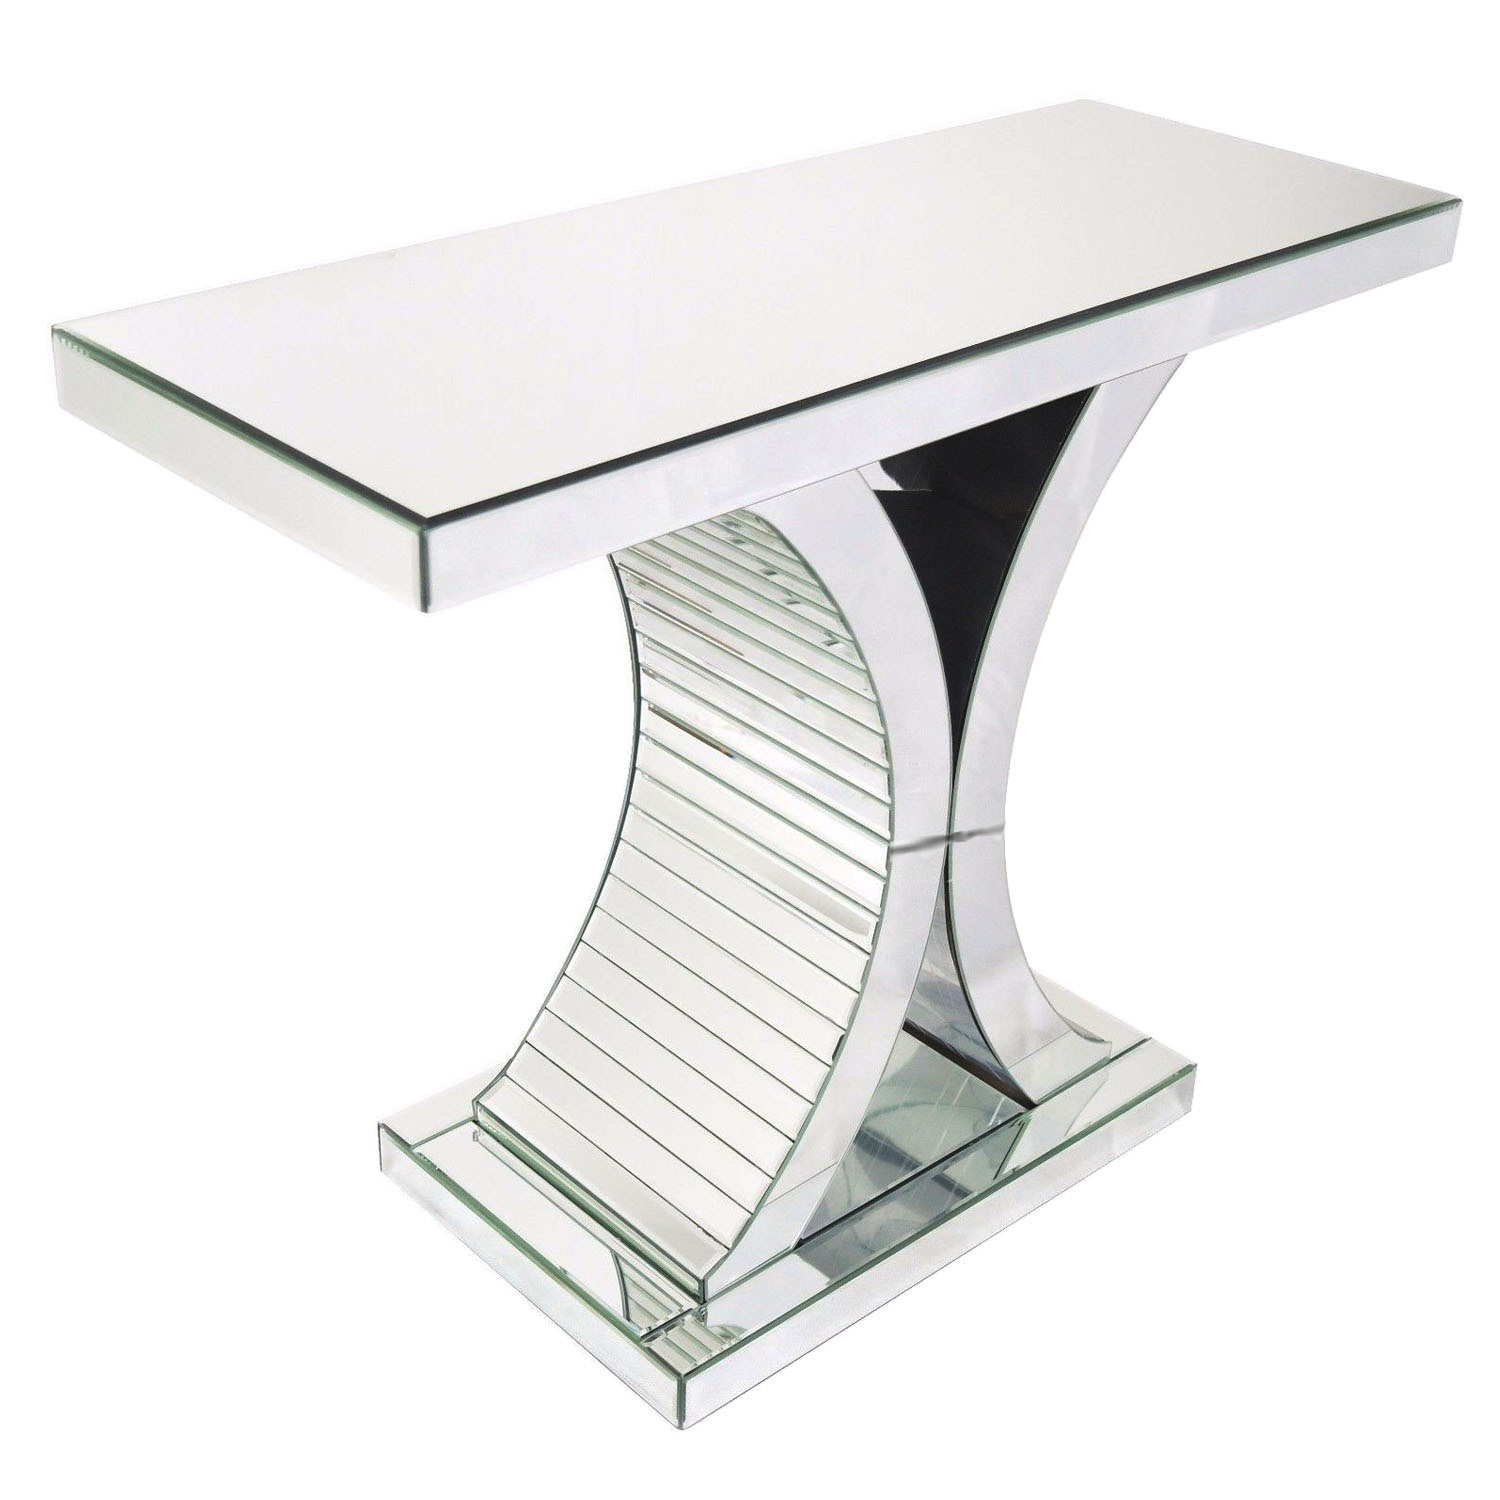 living room console tables mirrored home decor ideas apartment glass x shape table hallway desk side details about